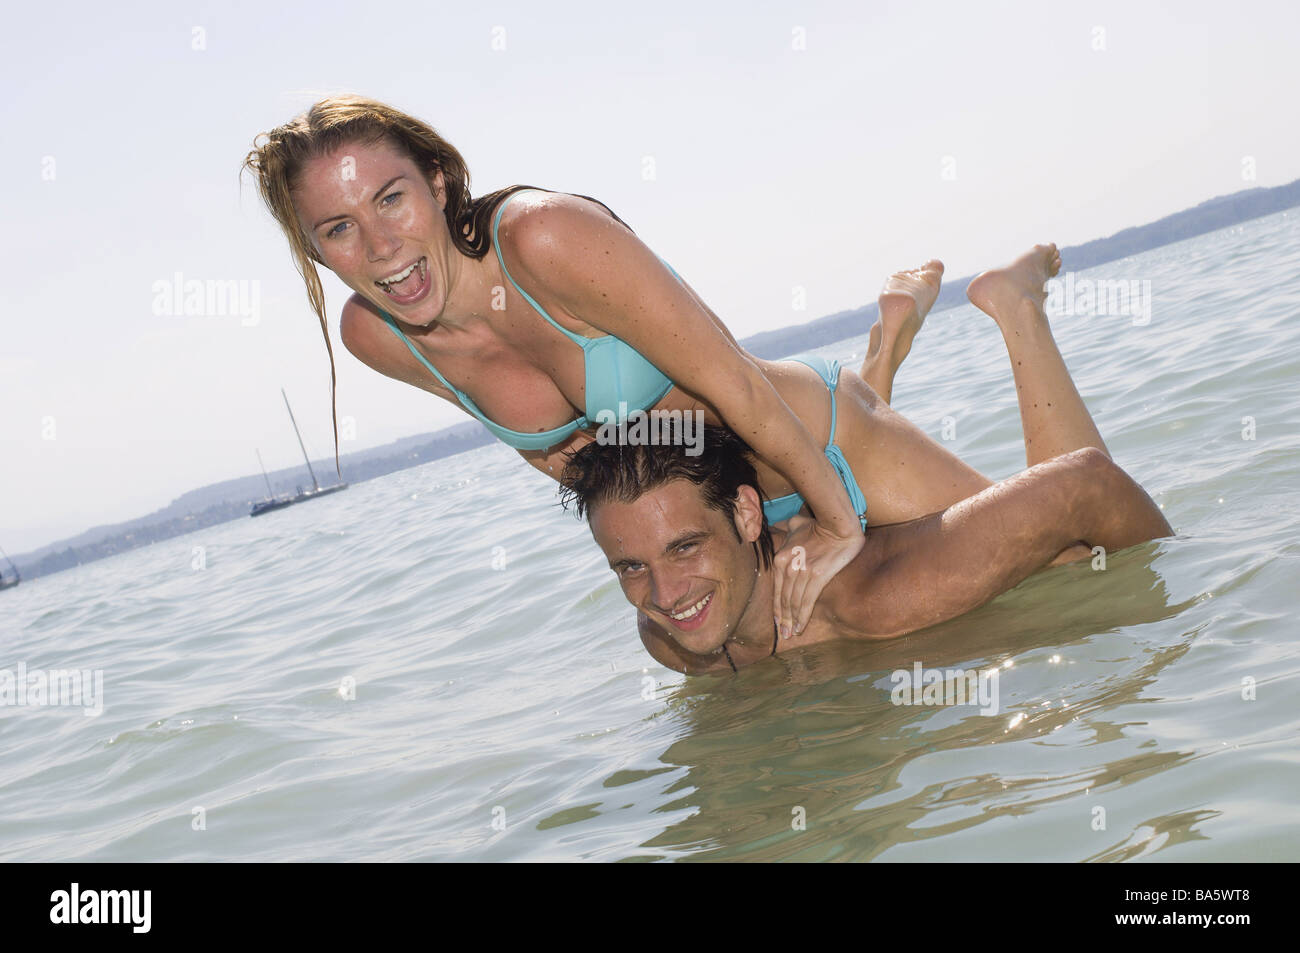 Sea pair water falls in love stands romps about omitted series people love-pair gaze camera refreshment cooling - Stock Image